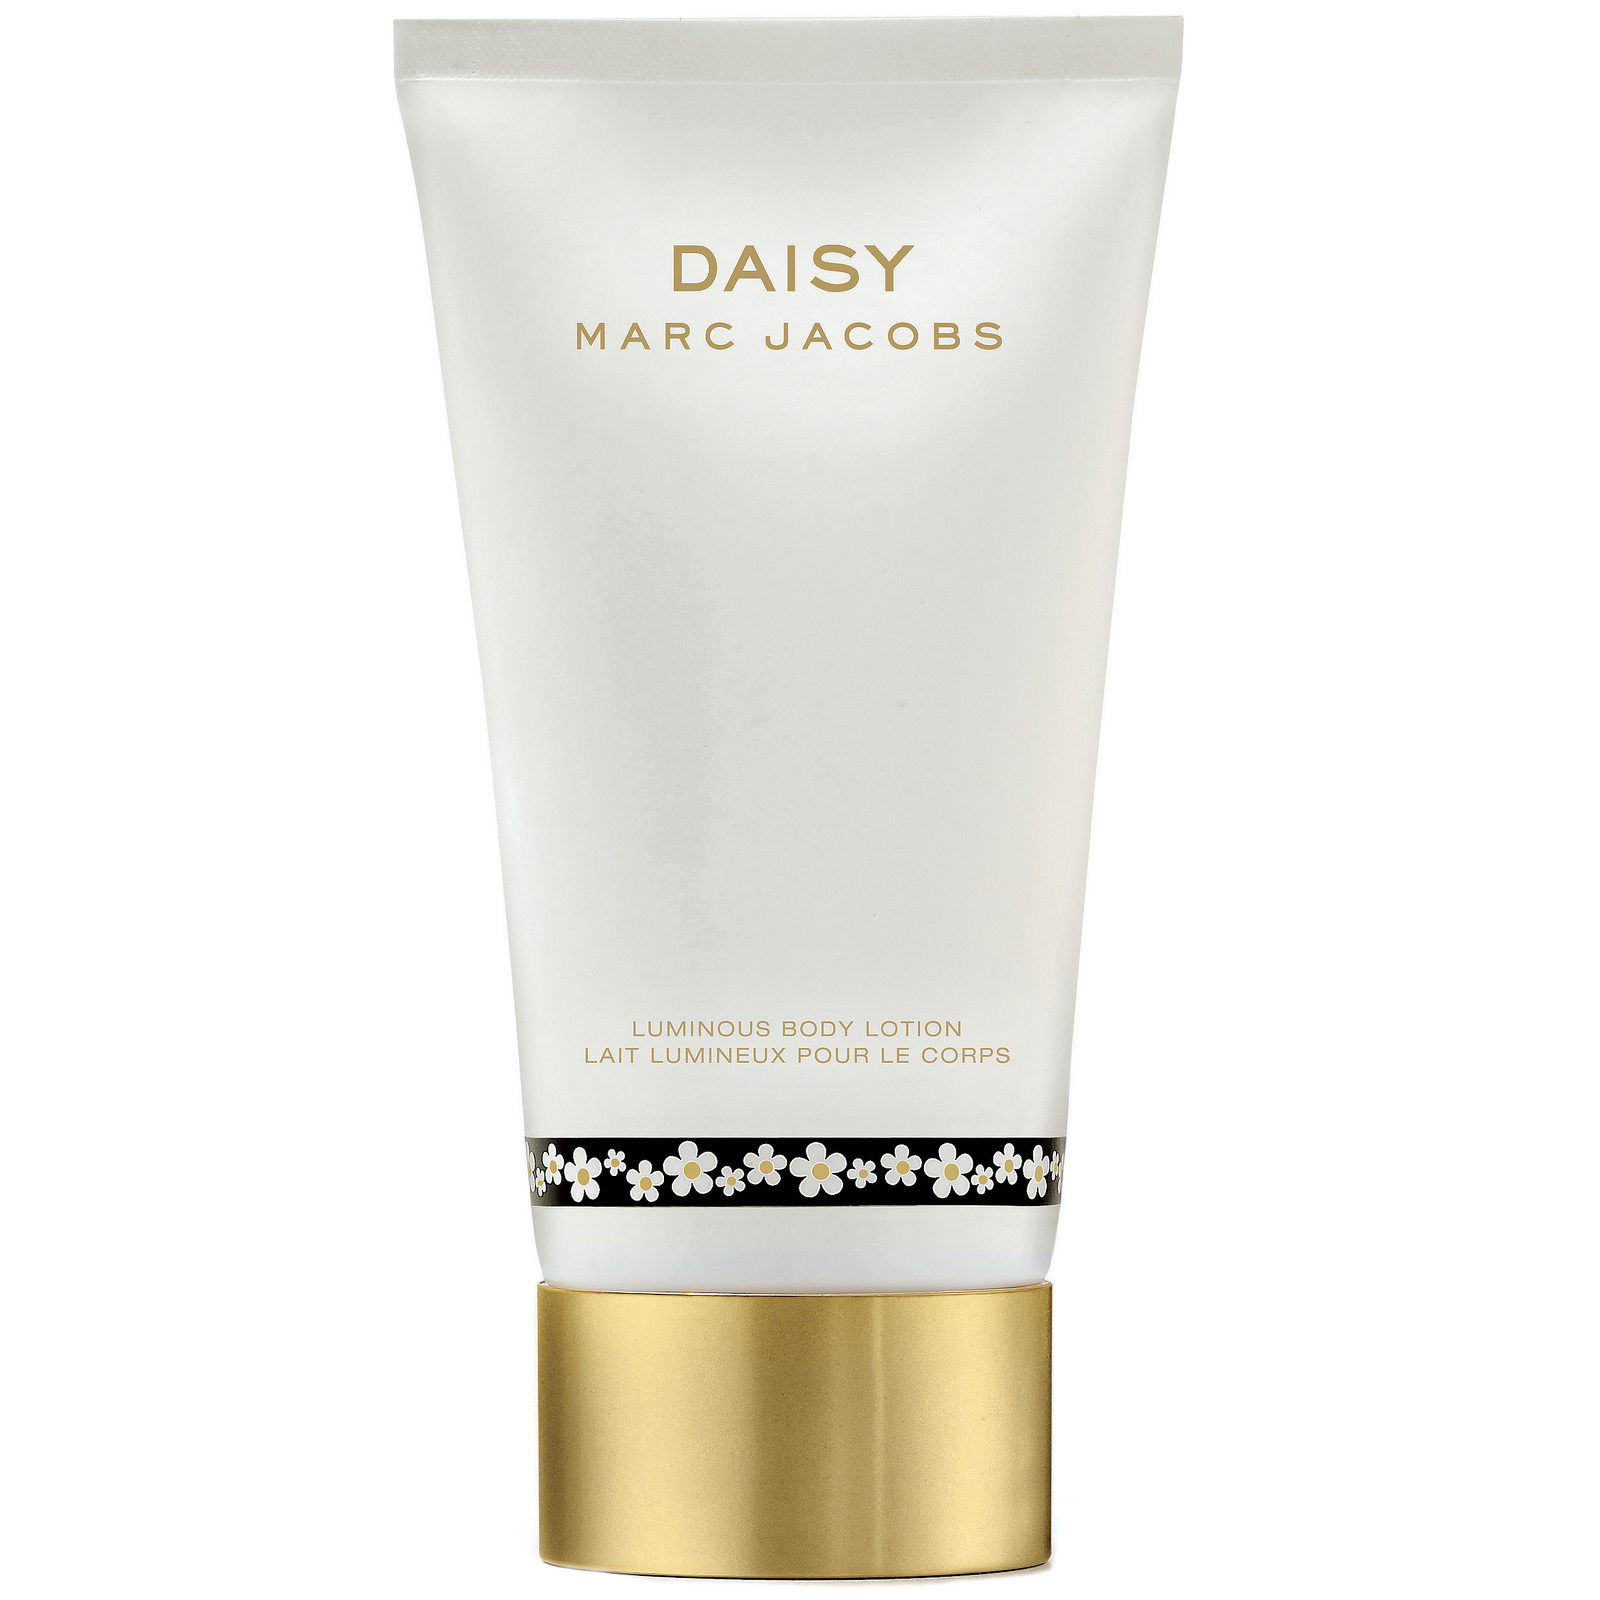 Marc Jacobs Daisy Luminous Body Lotion 150ml